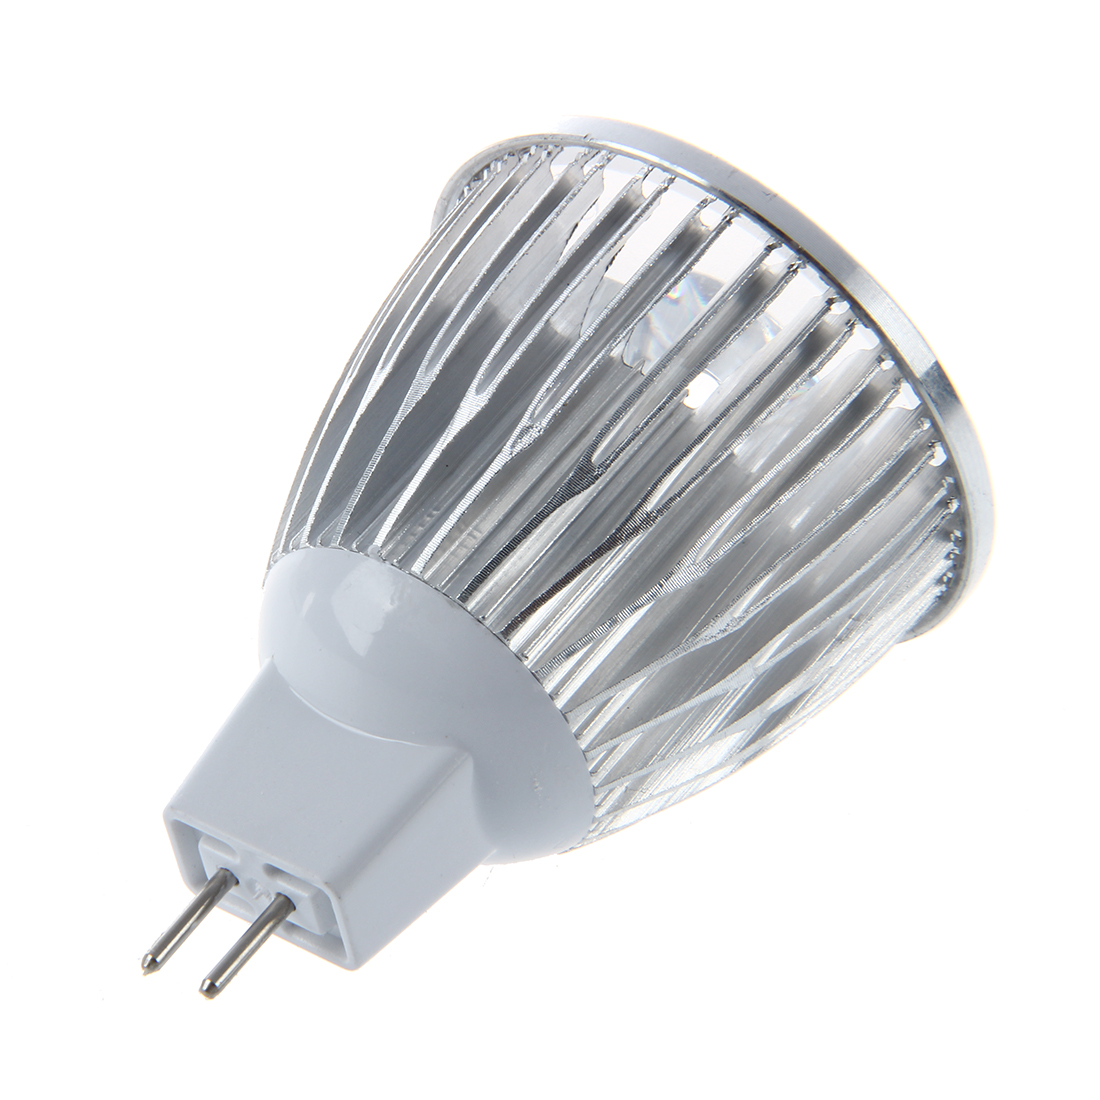 6W MR16 GU5.3 Warm White 3 LED Light Lamp Bulb Spotlight High Power FOR Recessed & Under Cabinet Lighting Bulb